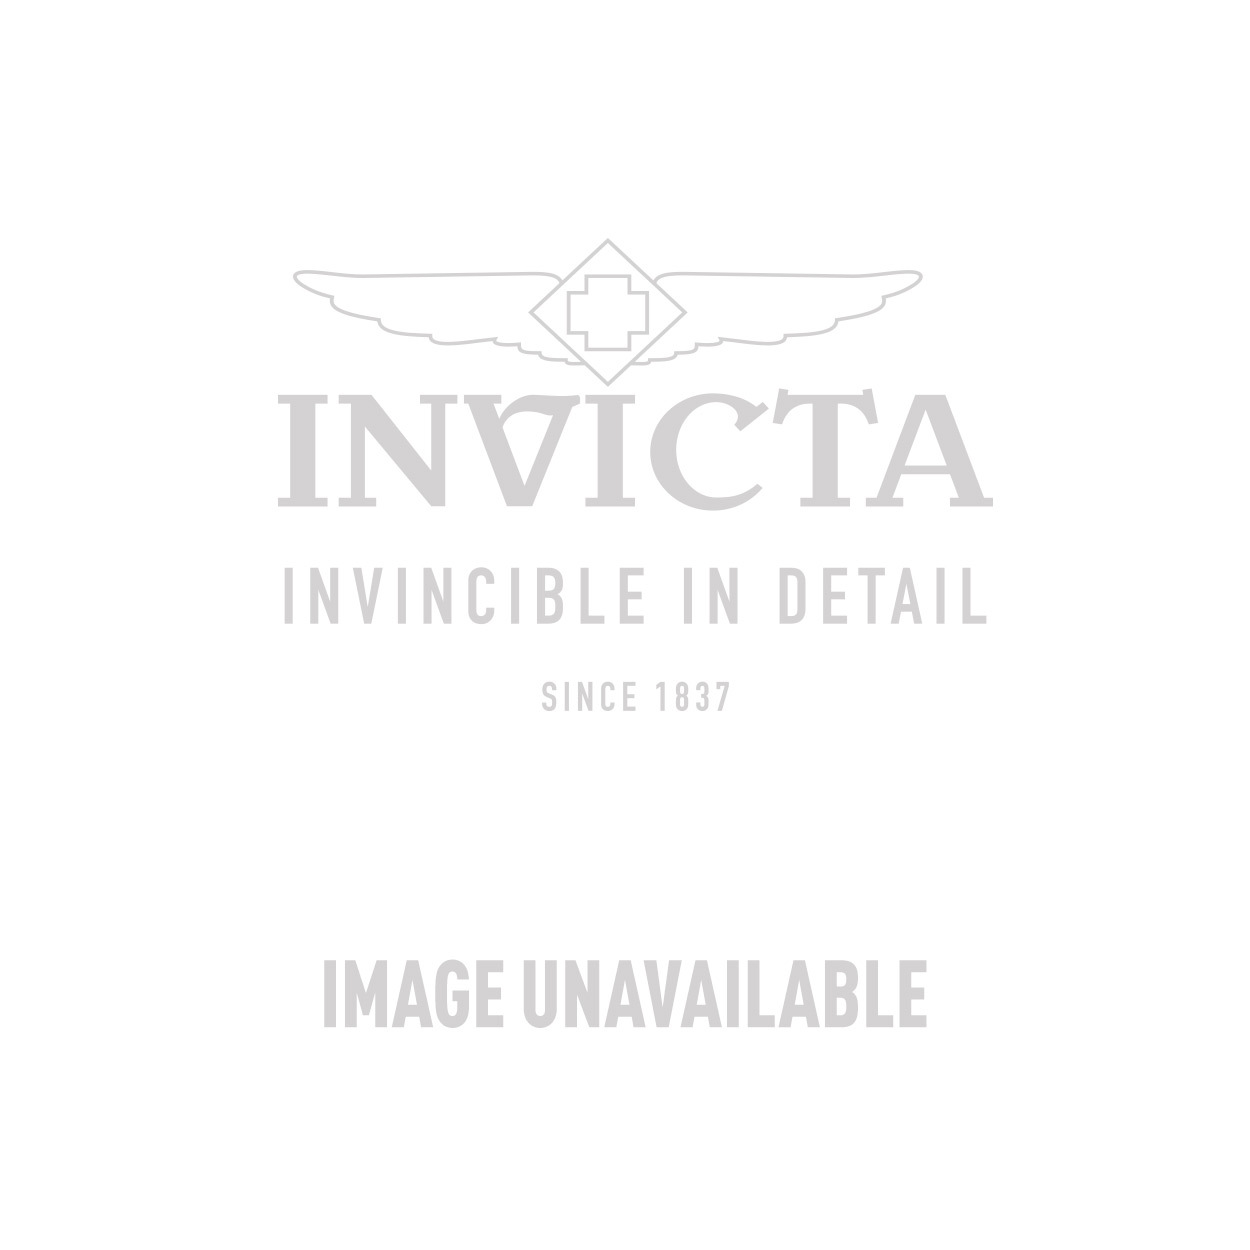 Invicta Corduba Swiss Movement Quartz Watch - Stainless Steel case with Black tone Leather band - Model 90206